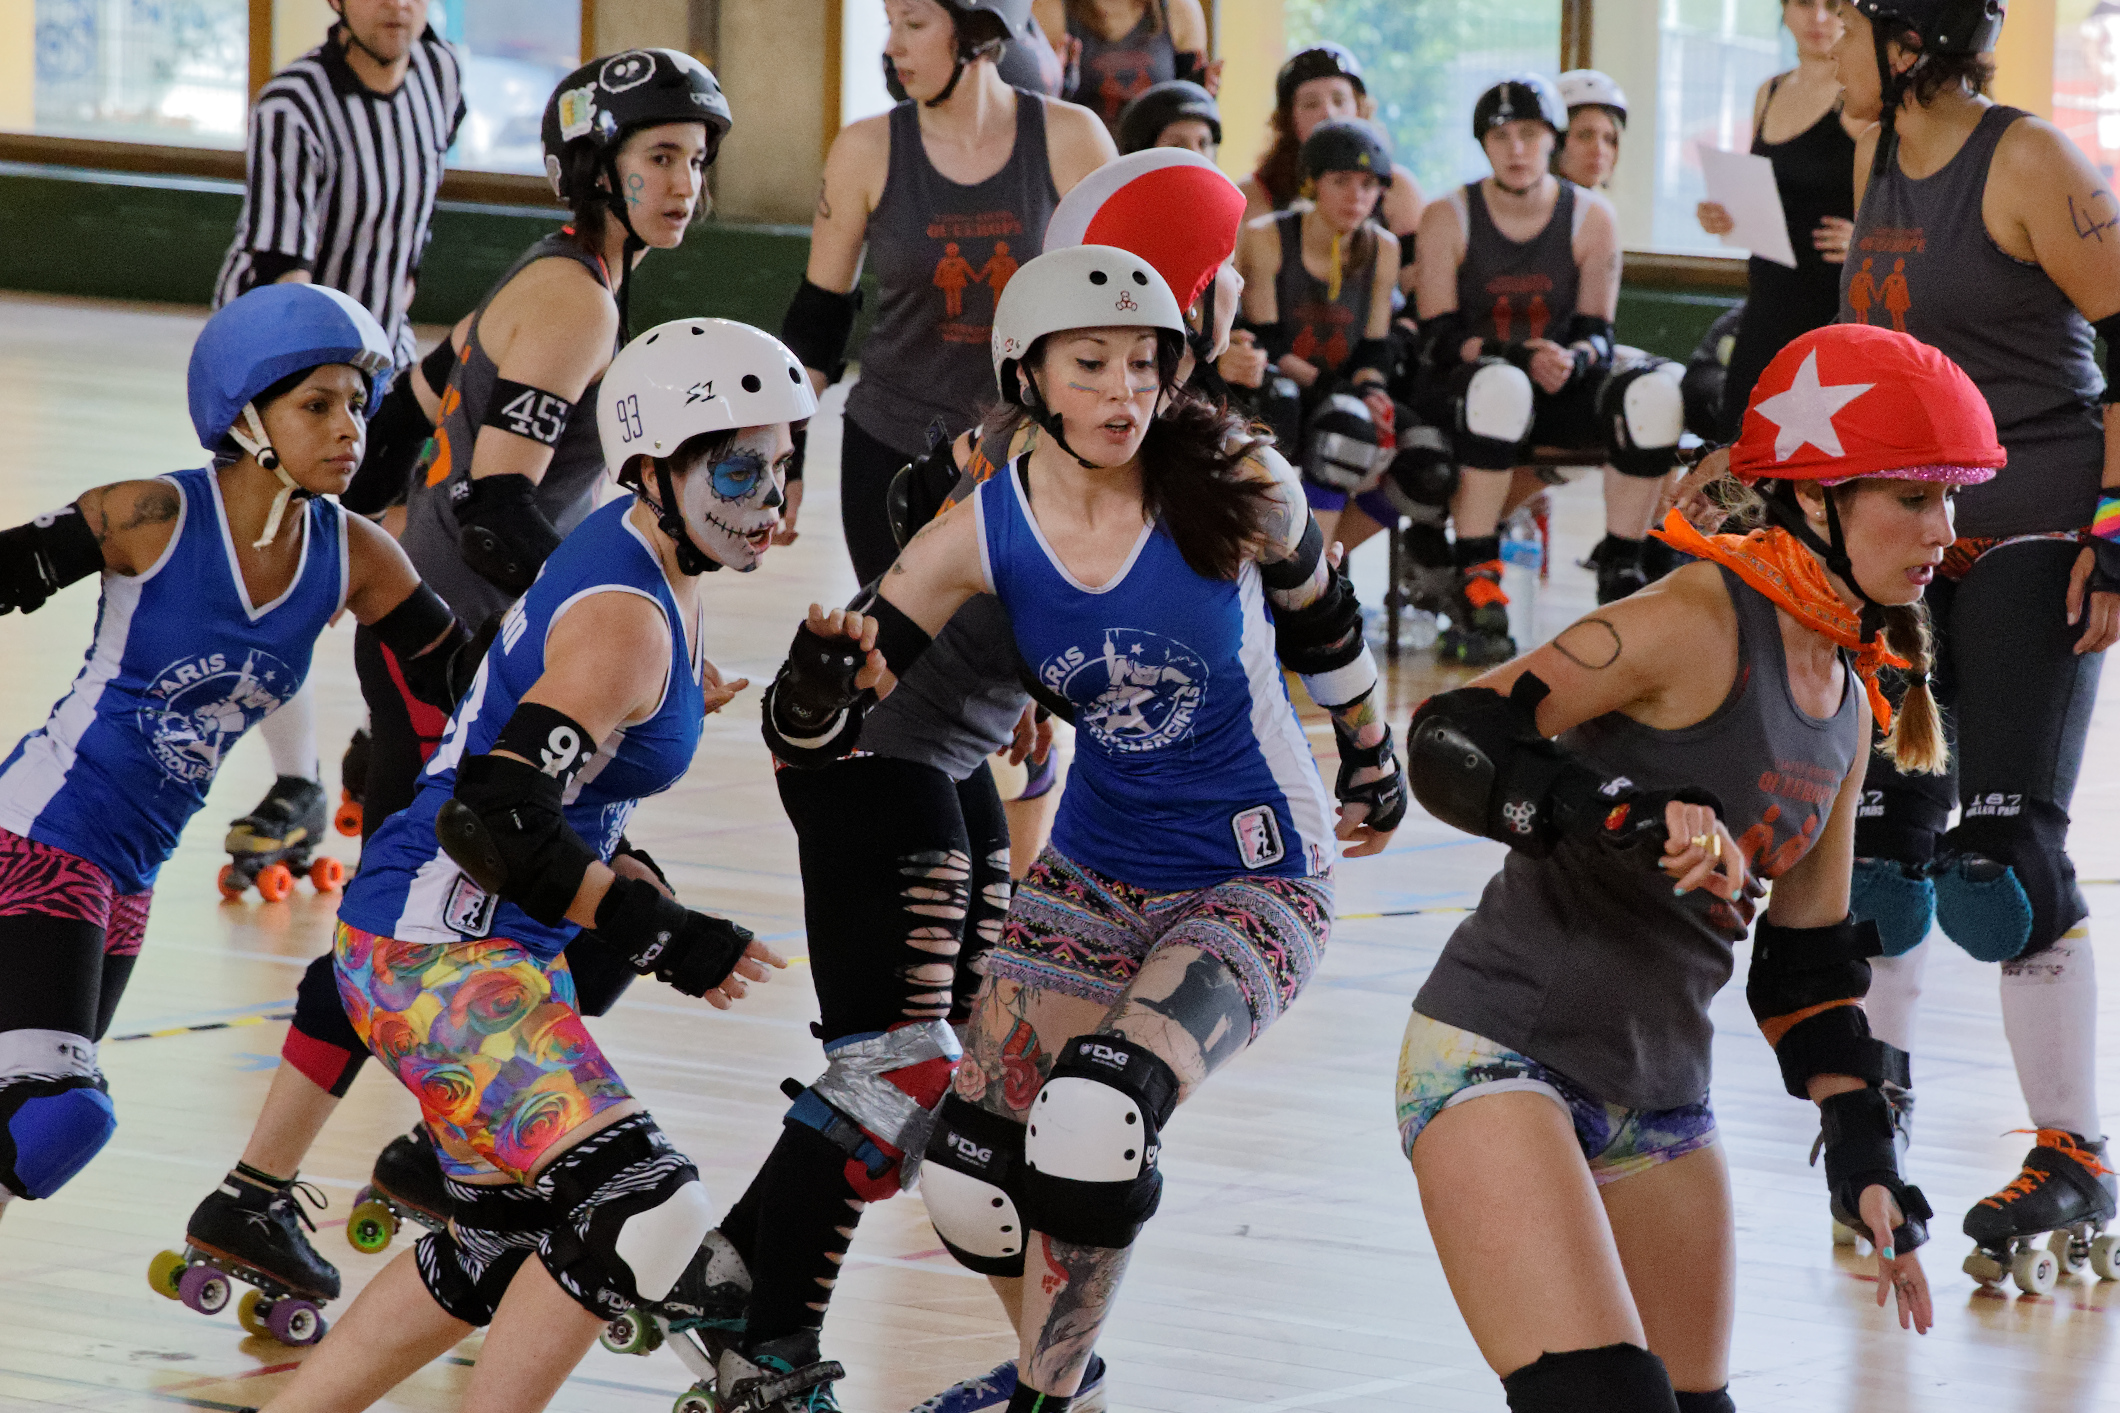 RollerDerby Experience